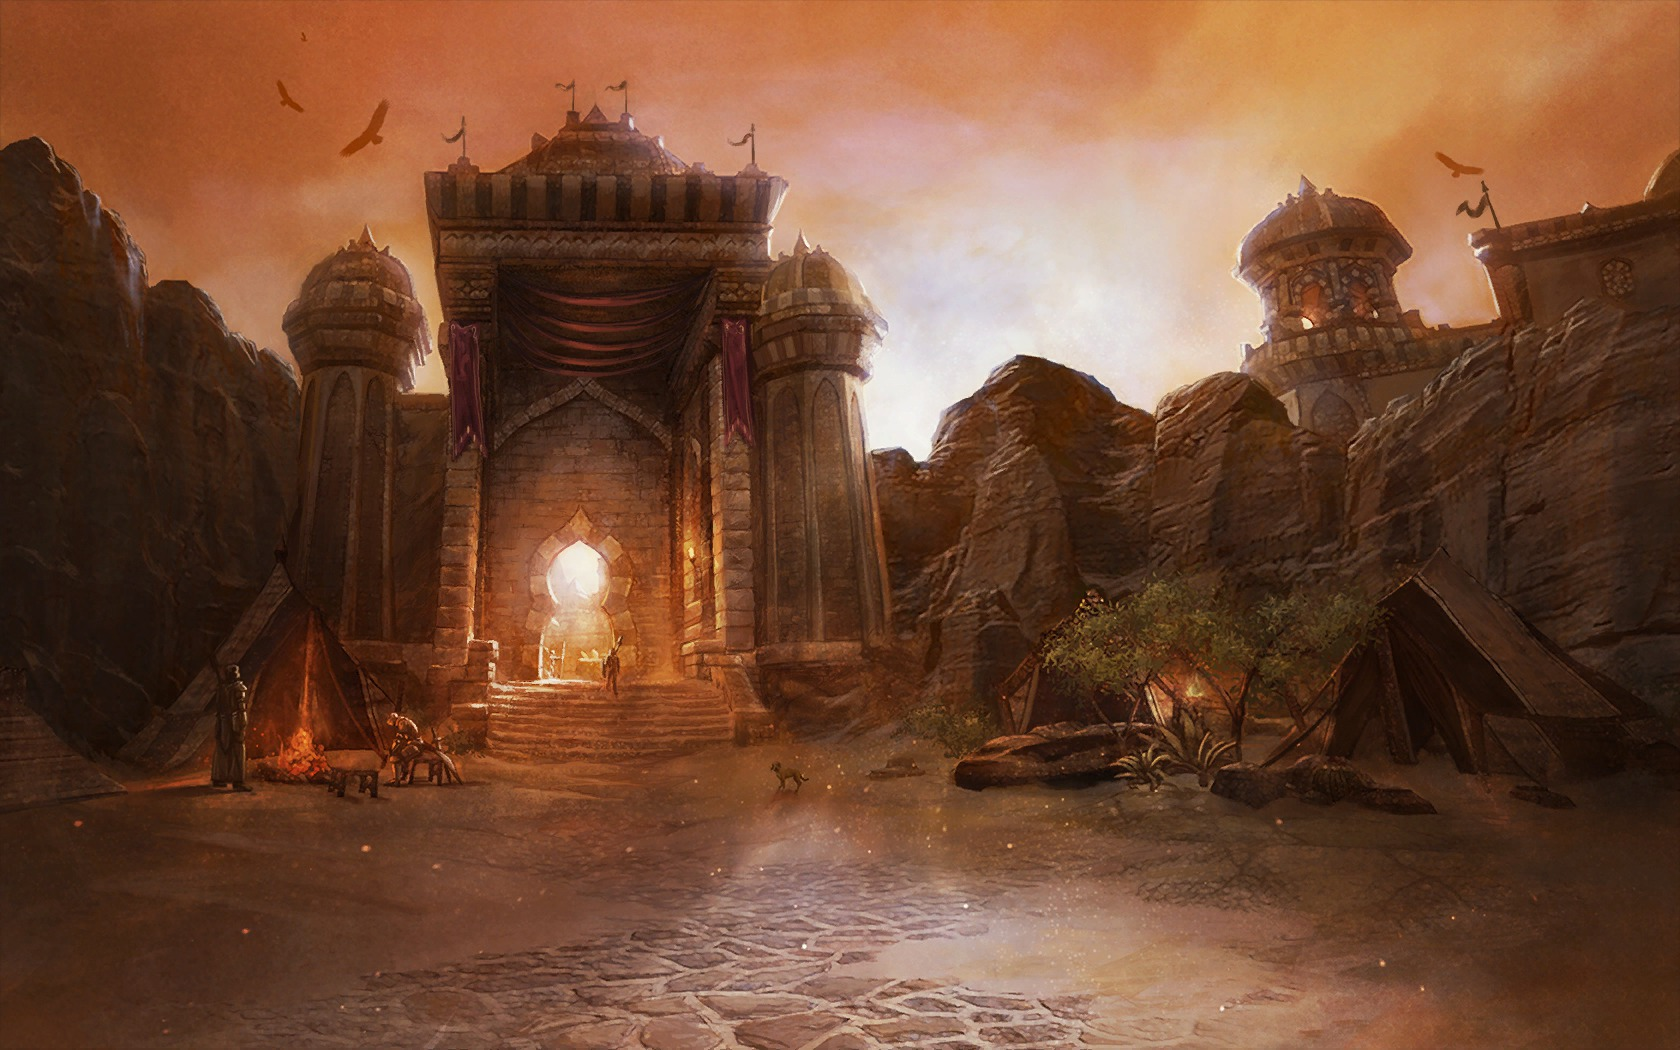 Elder Scrolls 6' Location: New Theory Suggests an Unexpected Setting